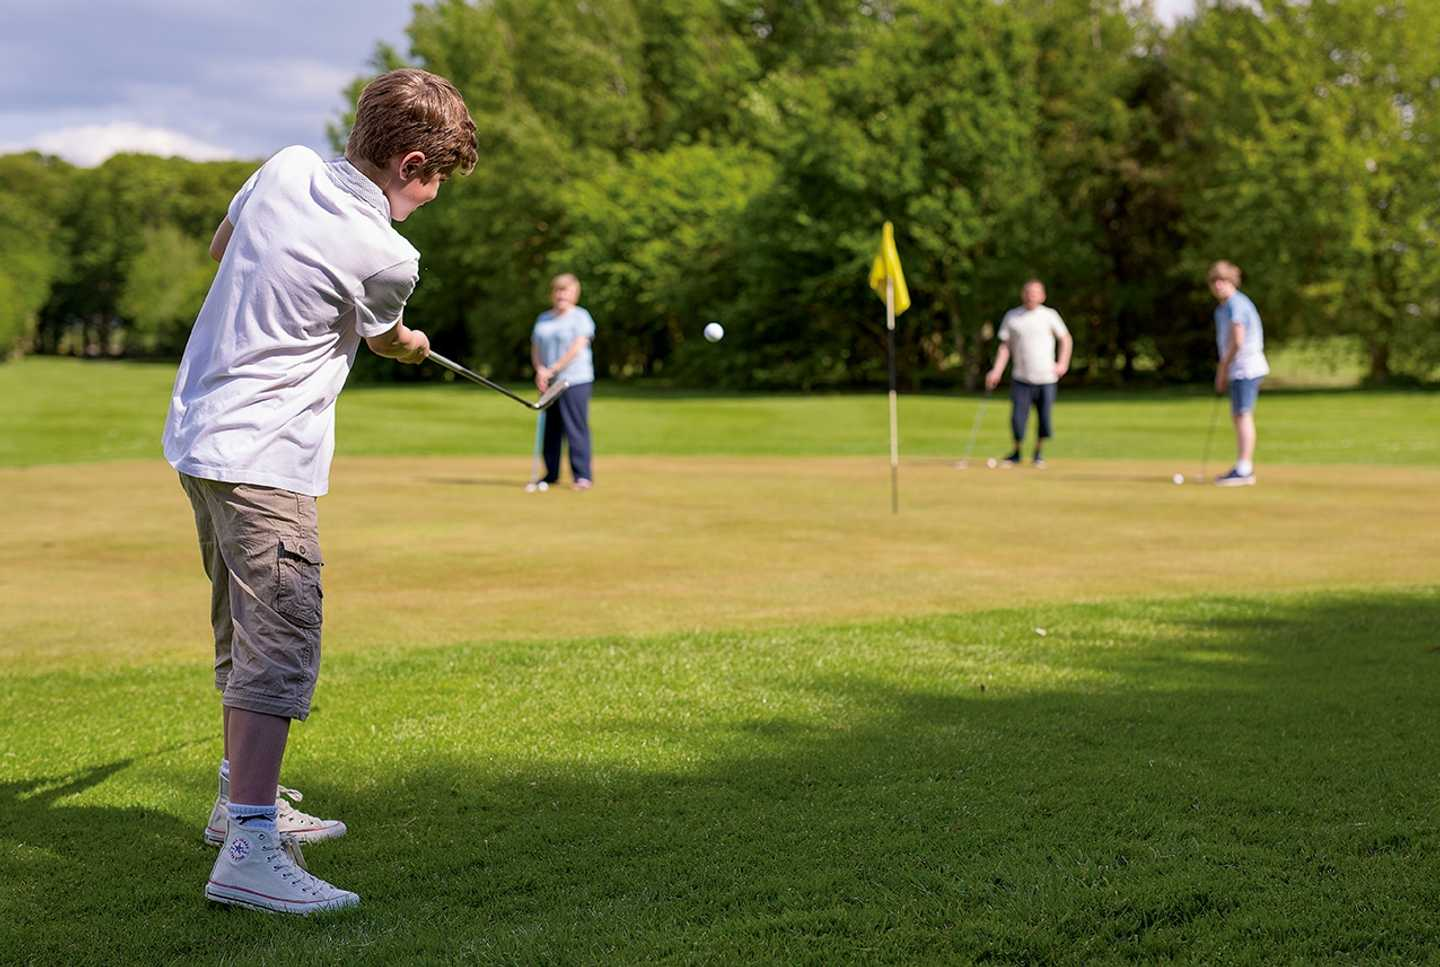 Guests playing a round of golf on the 9-hole golf course